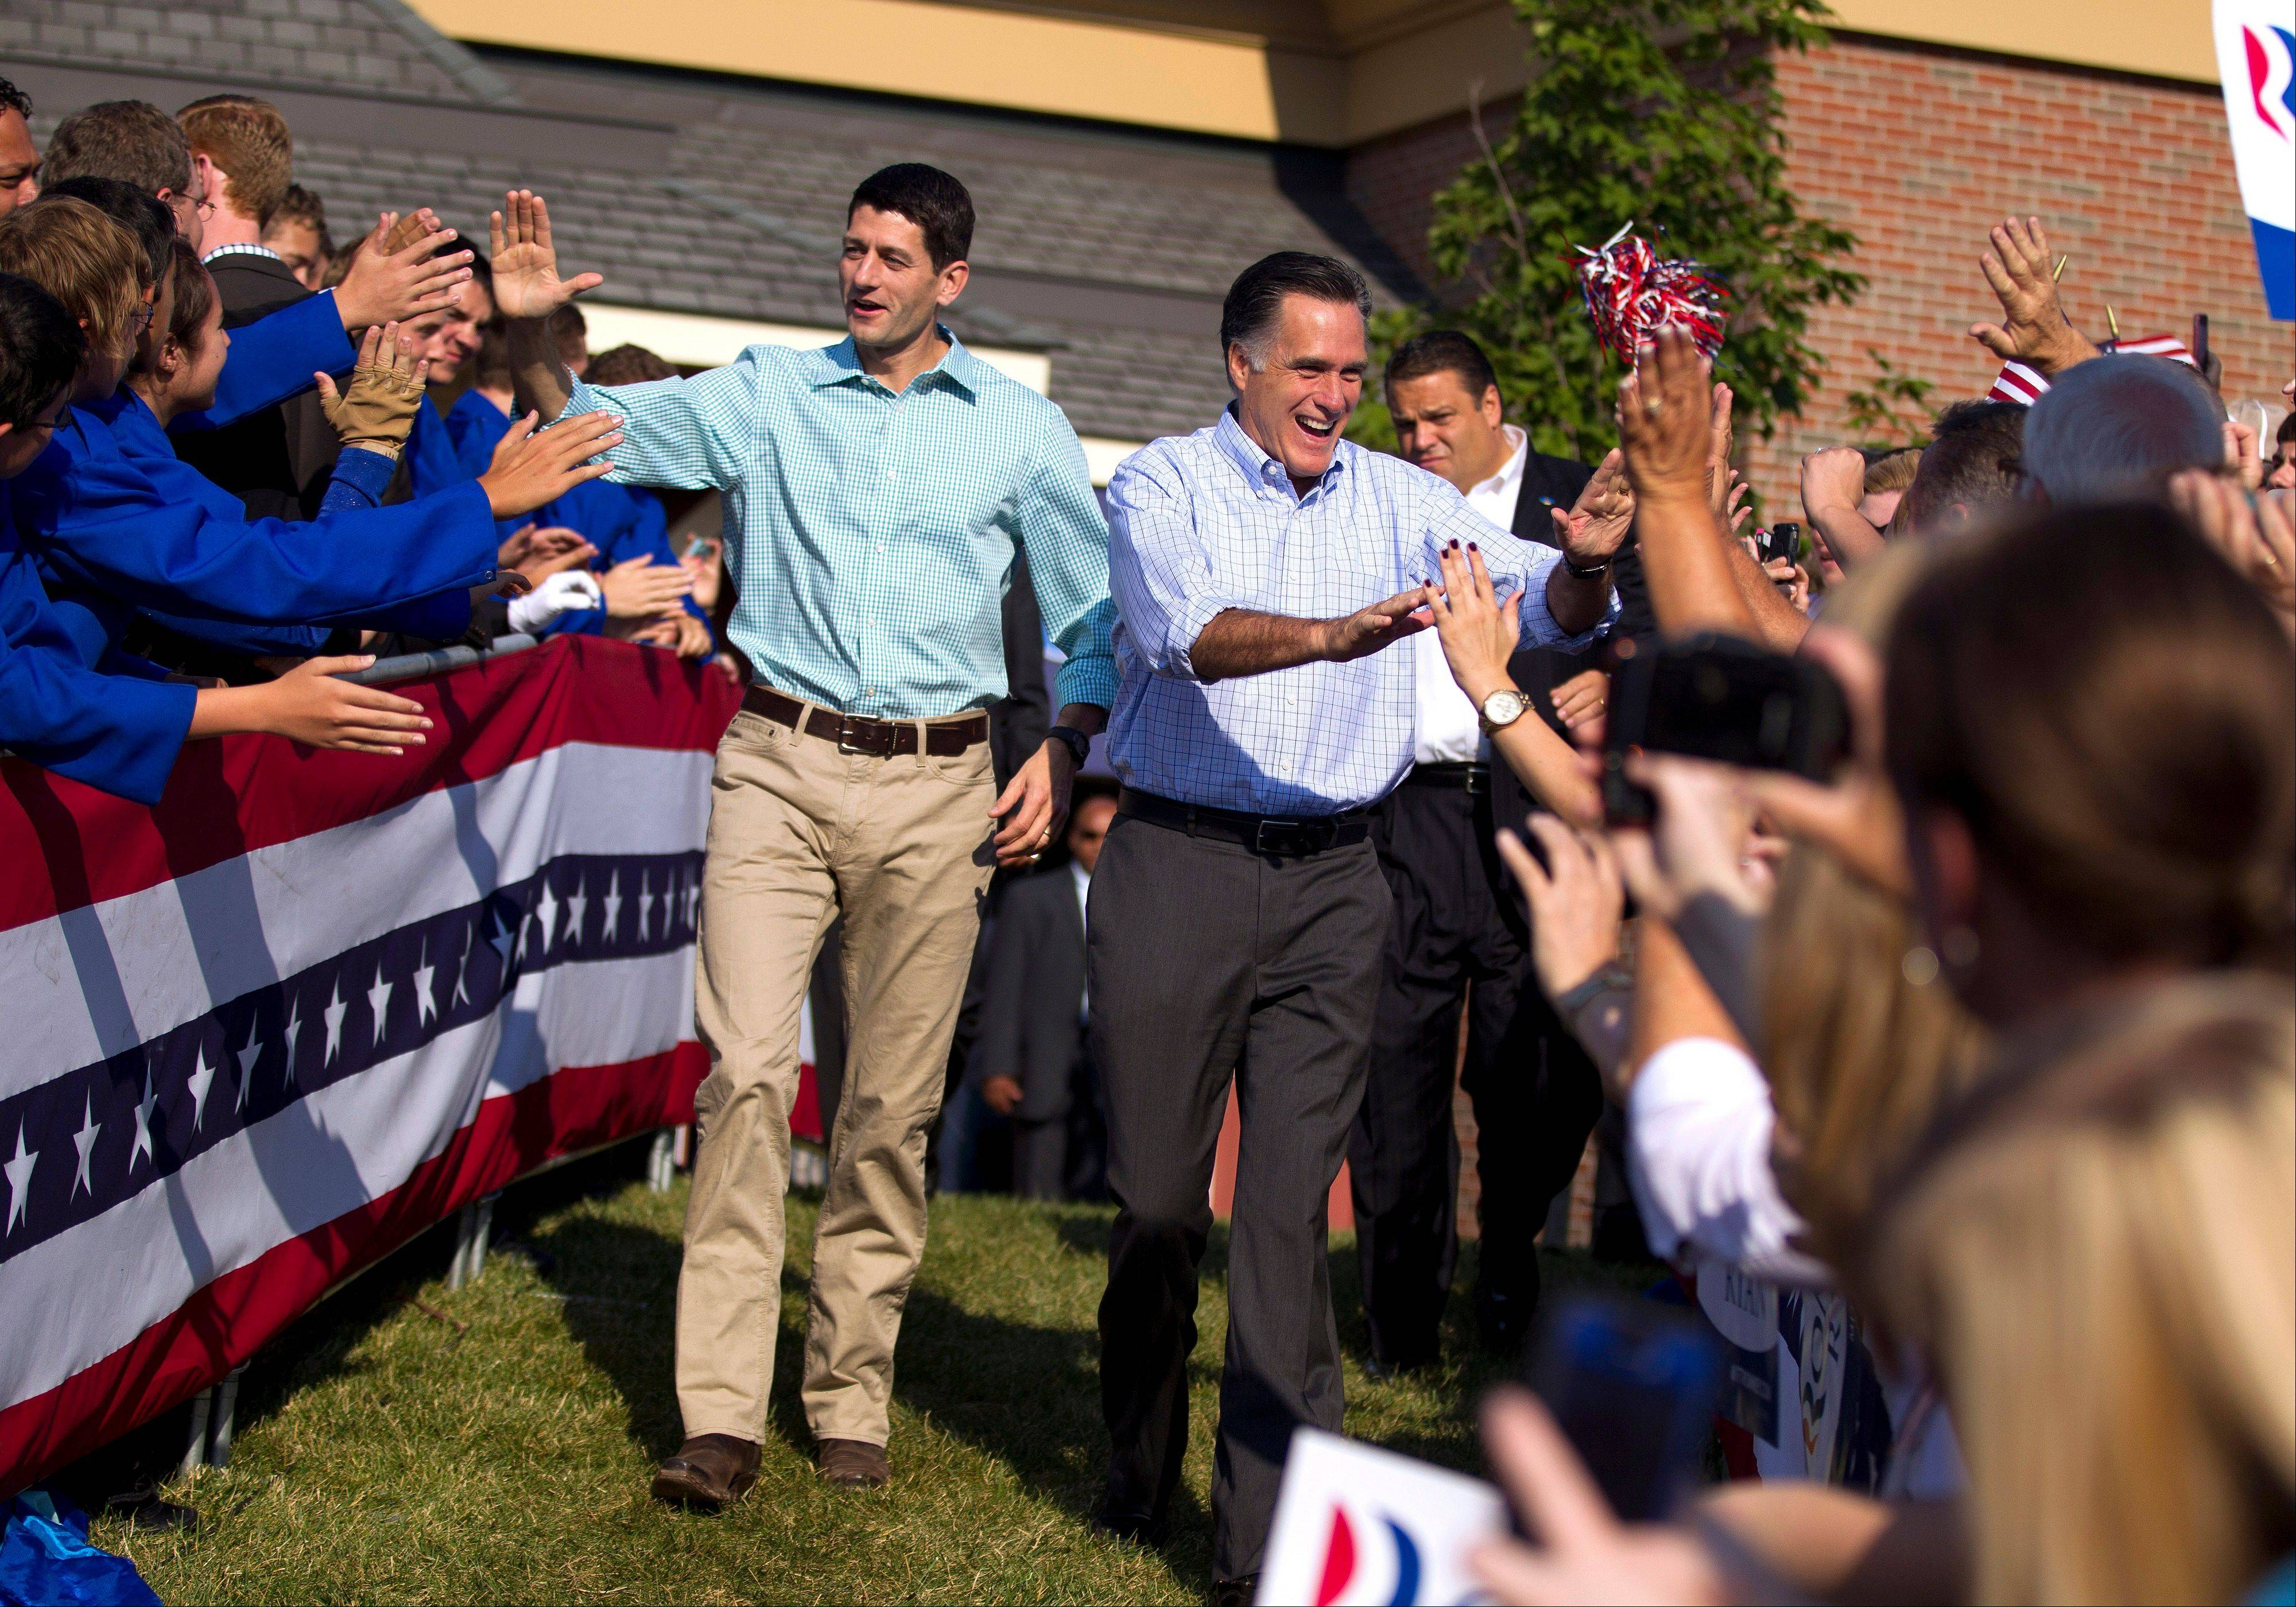 In this Aug. 25, 2012 file photo, Republican presidential candidate, former Massachusetts Gov. Mitt Romney and his vice presidential running mate Rep. Paul Ryan, arrive for a campaign rally in Powell, Ohio. They're the political world's newest odd couple: Mitt Romney and Paul Ryan are bound by substance, but dramatically different in style.